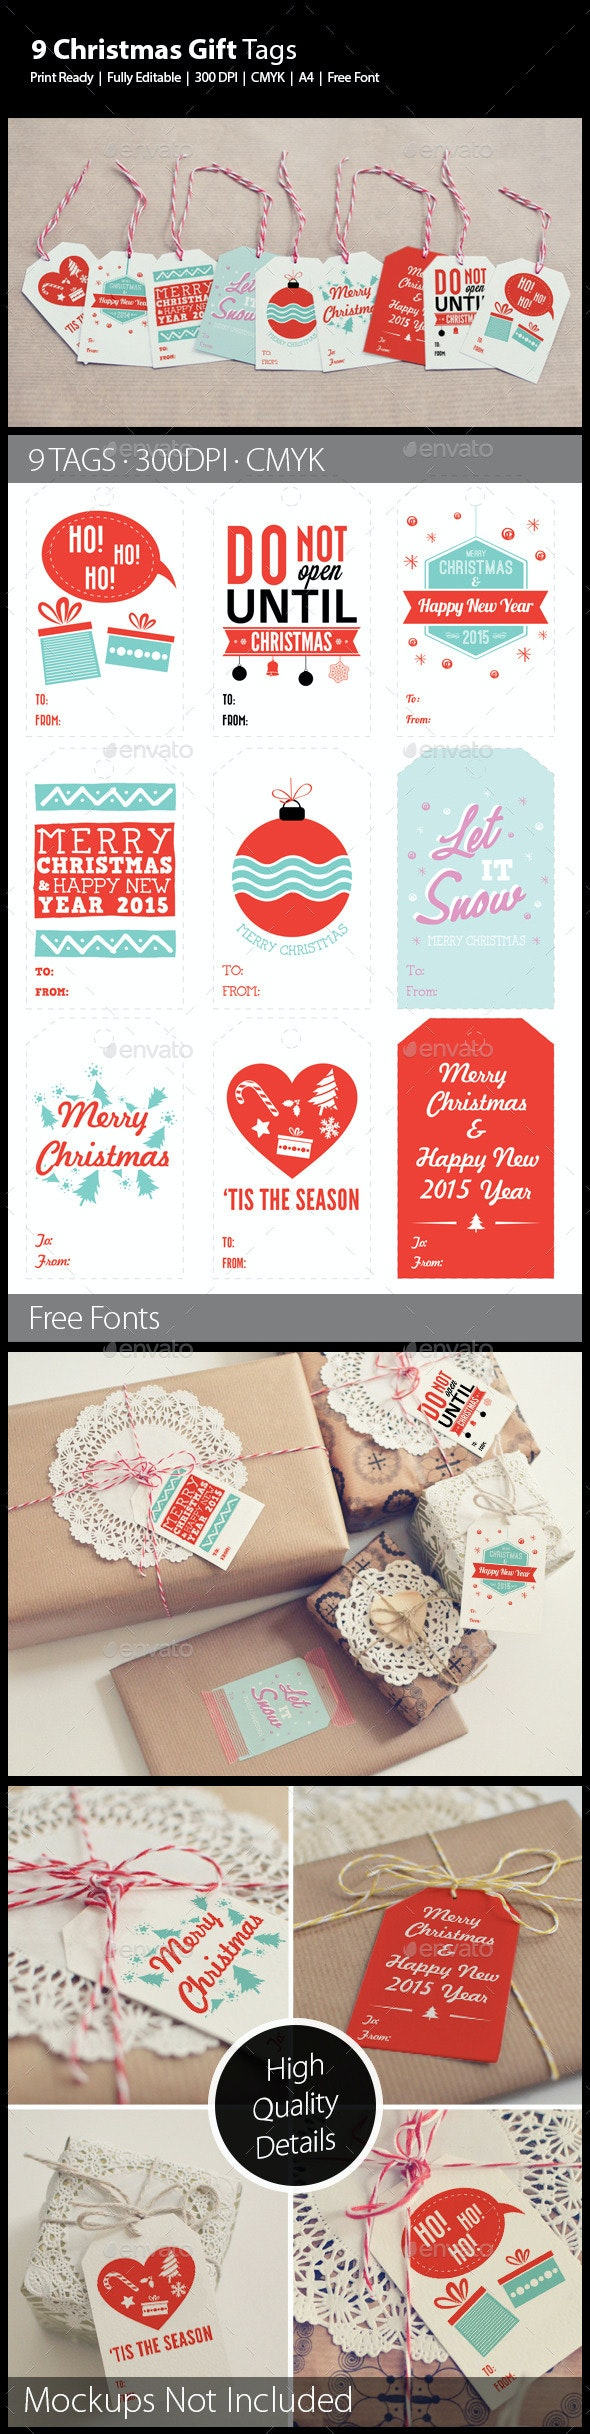 9 Christmas Gift Tags - Holiday Greeting Cards